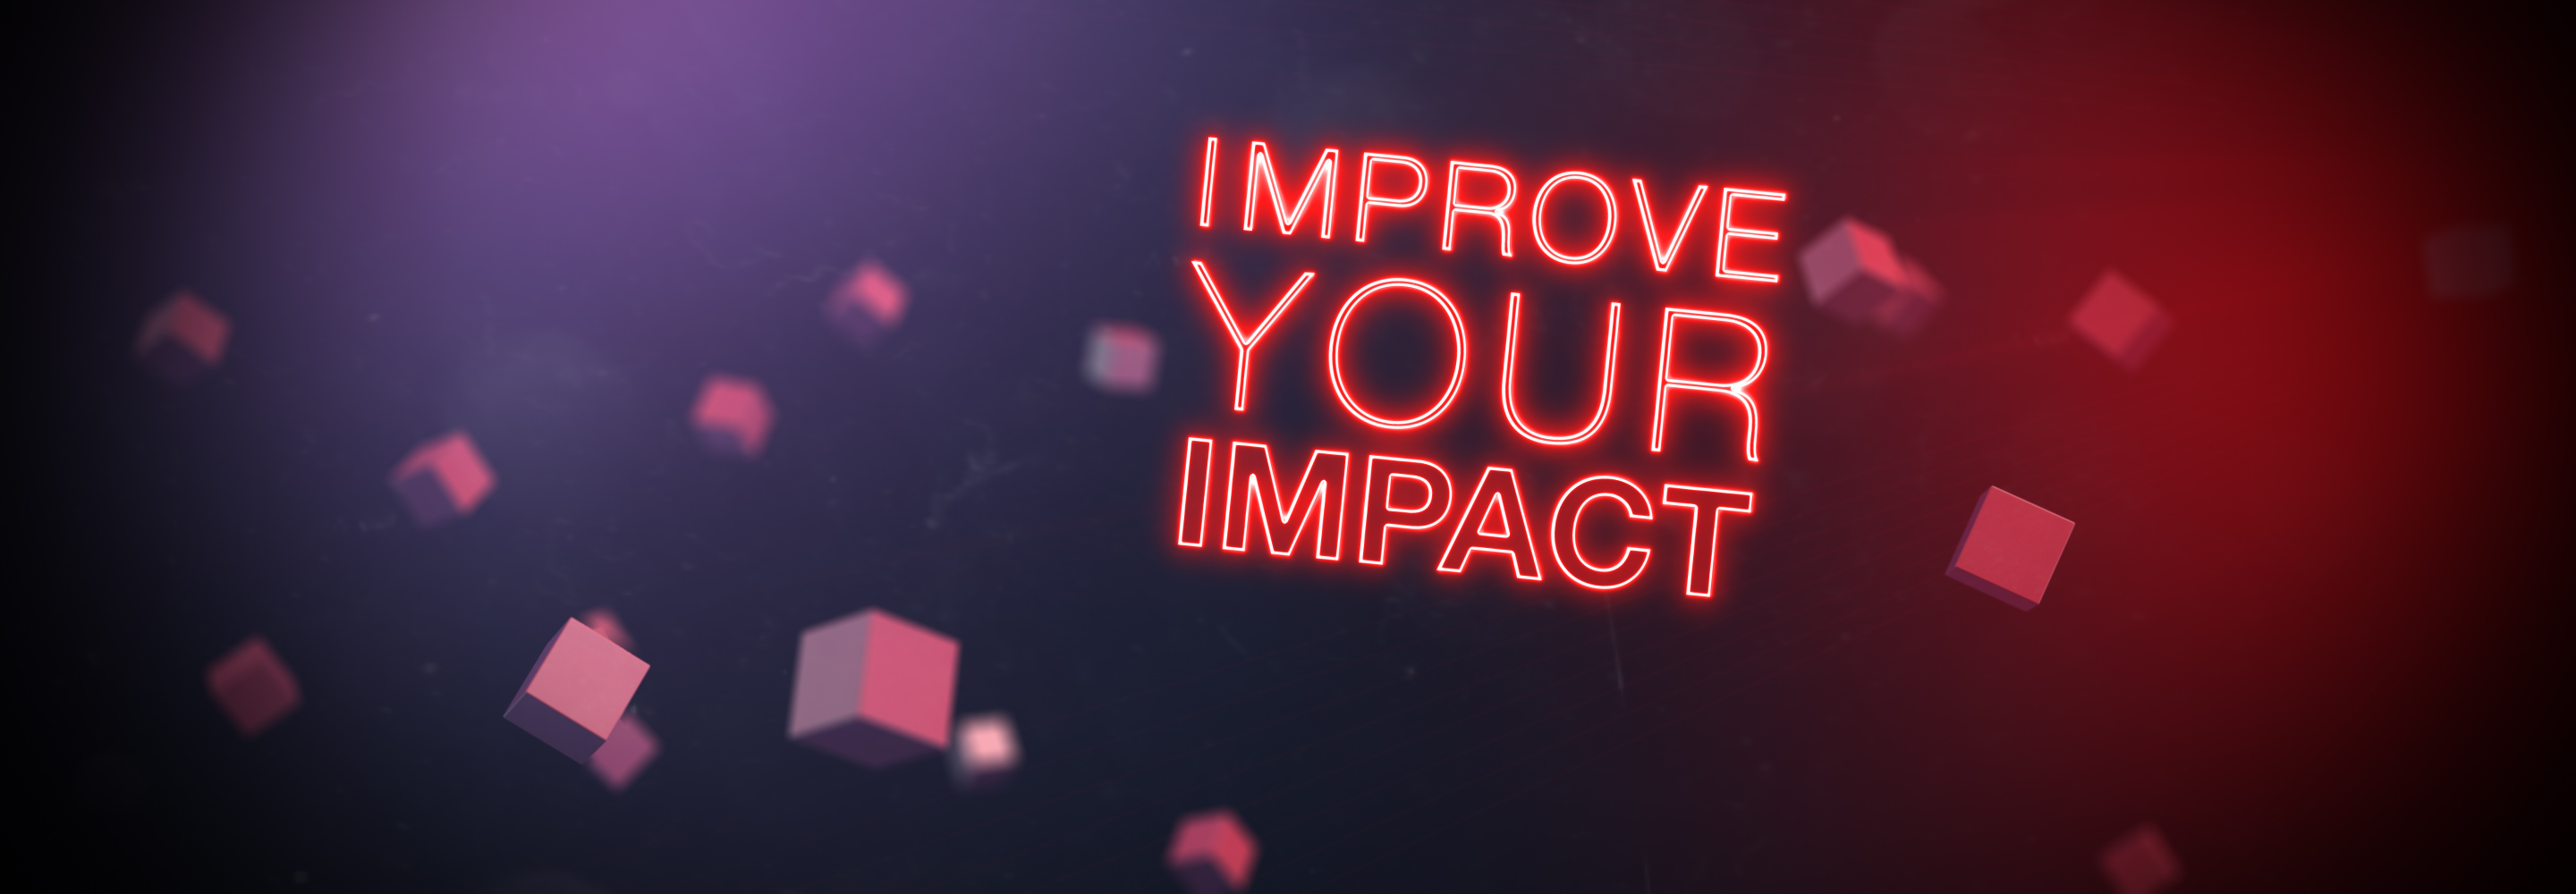 Improve your Impact with Media Impact